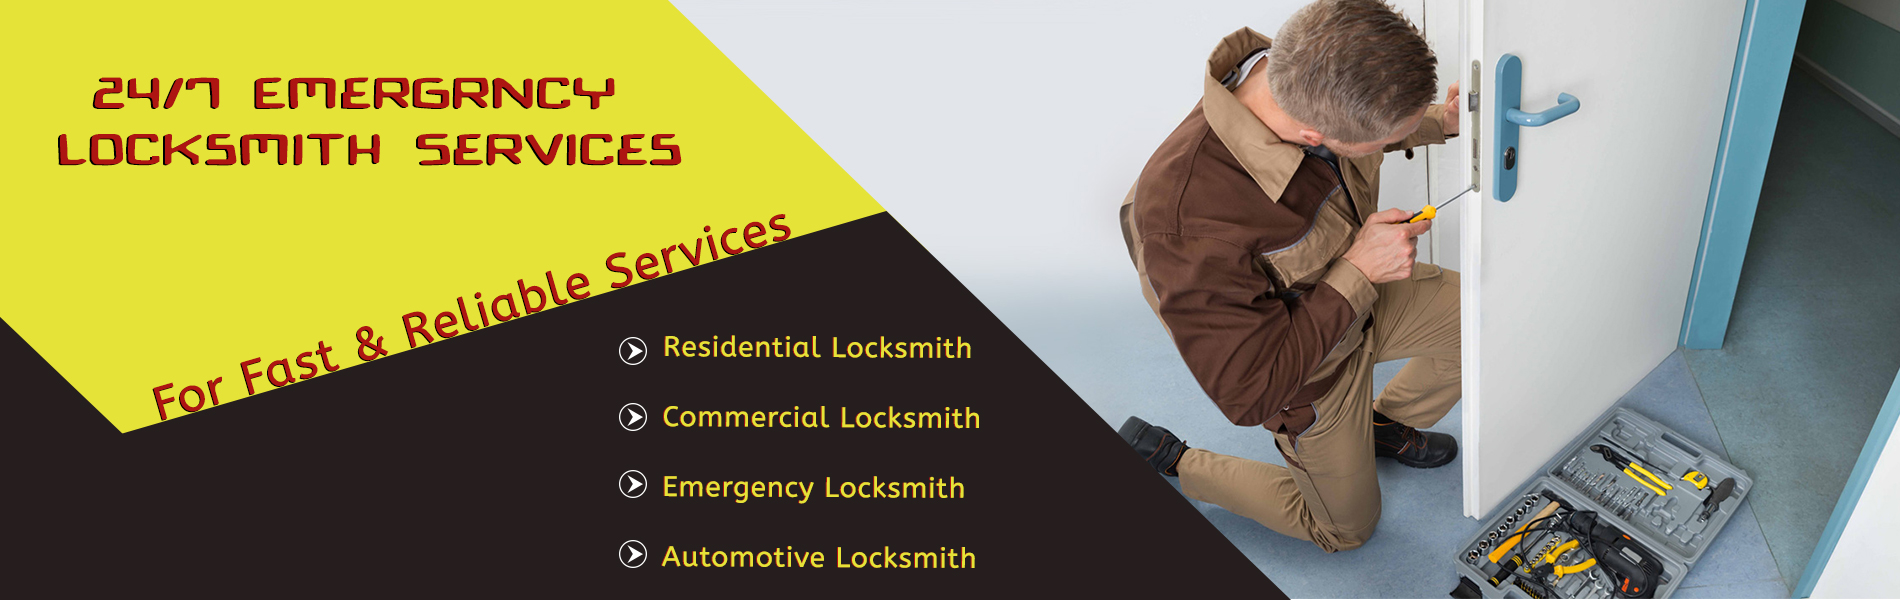 Katy TX Locksmiths Store Katy, TX 281-839-2748